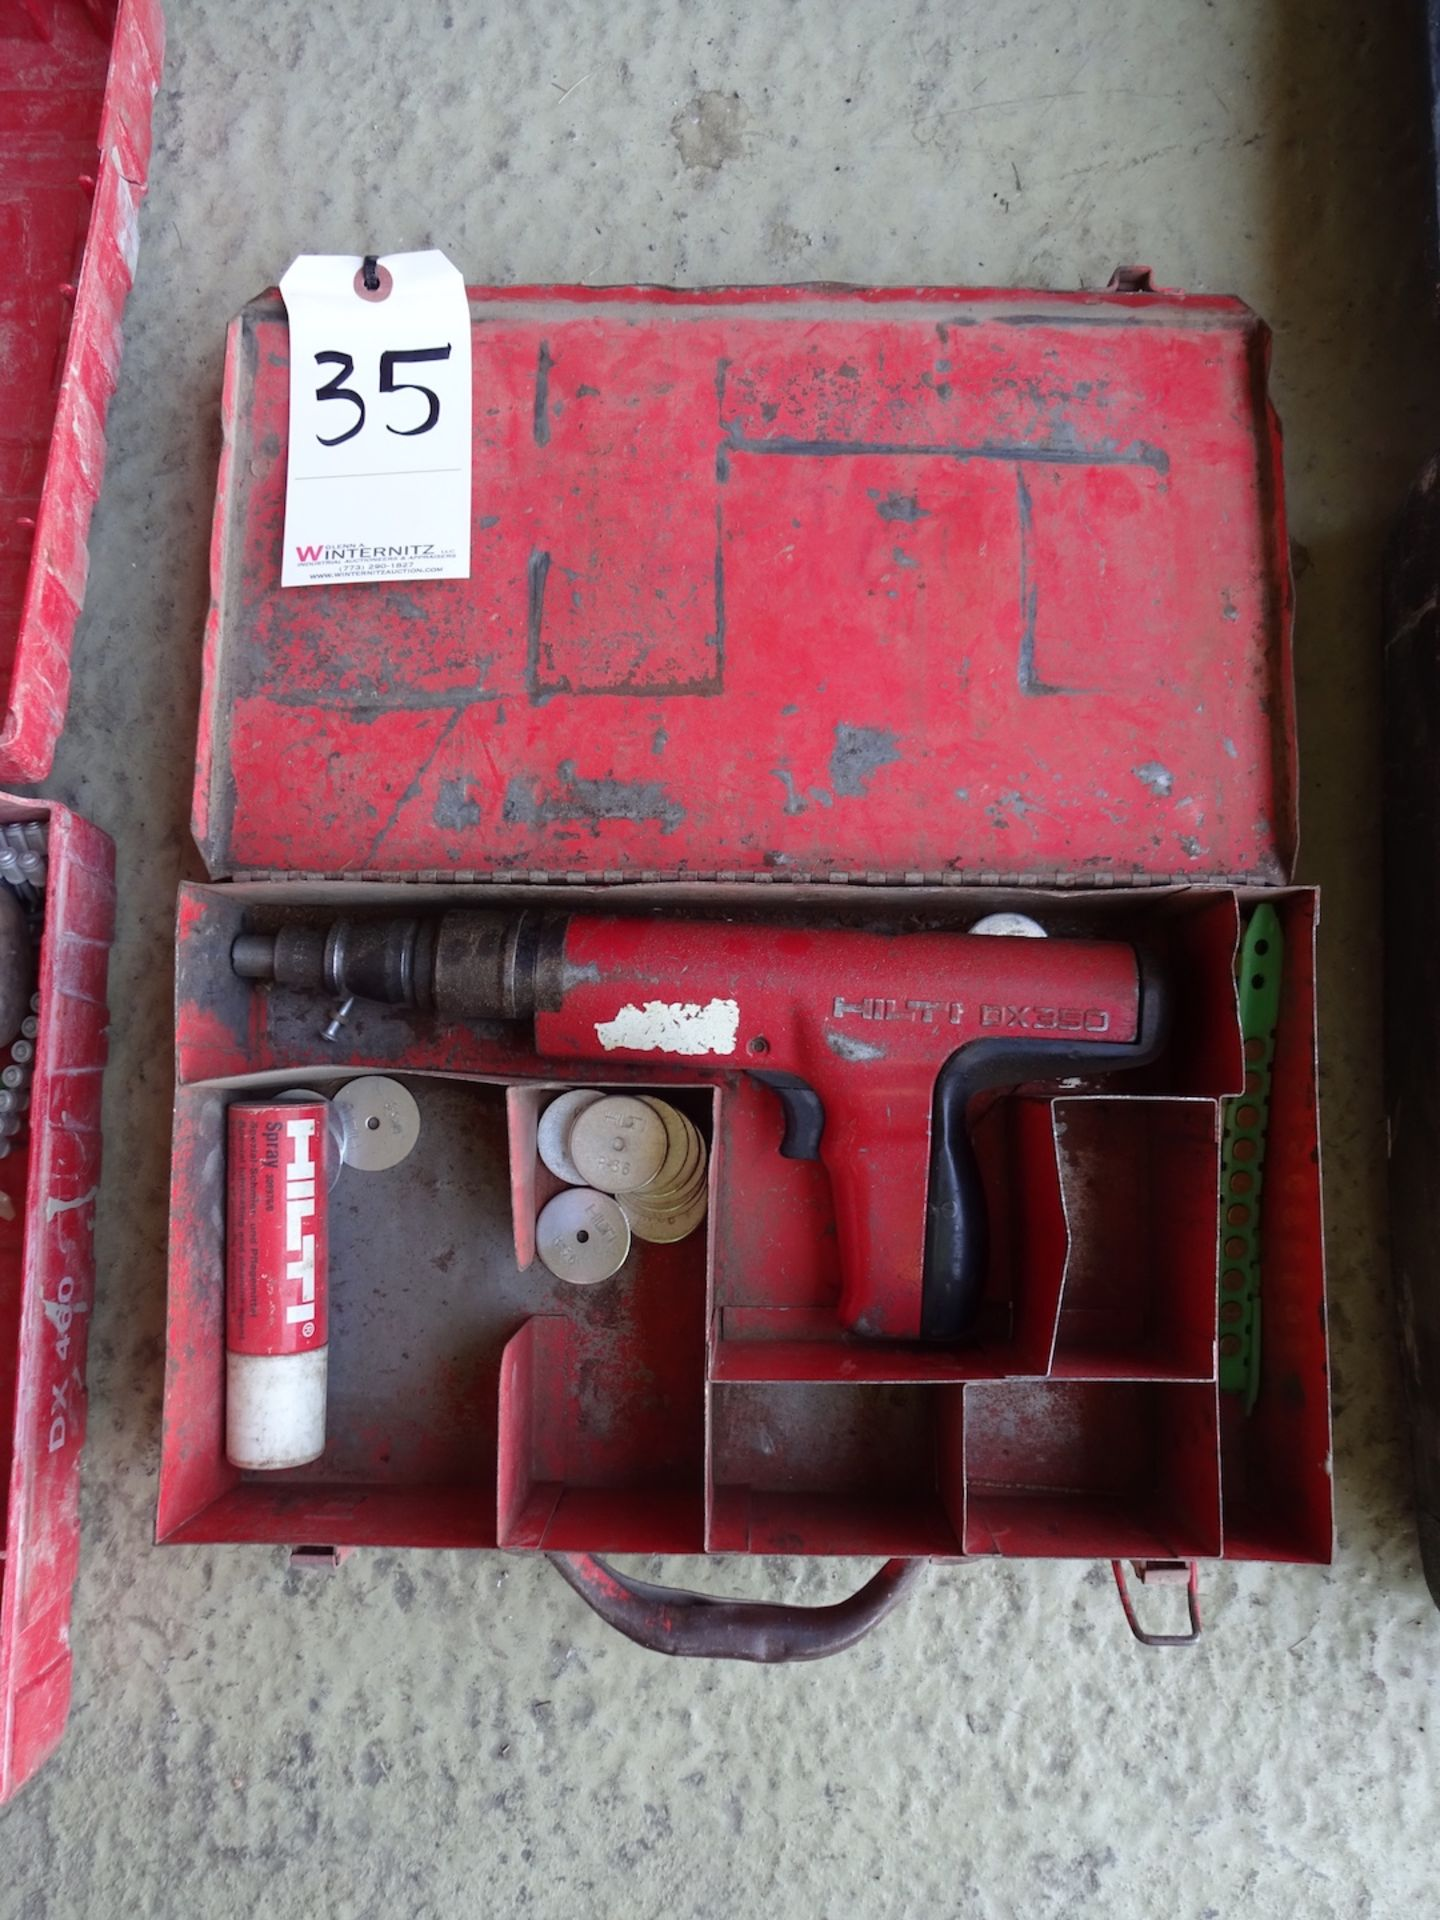 Lot 35 - HILTI DX 350 POWDER ACTUATED FASTENER WITH CASE